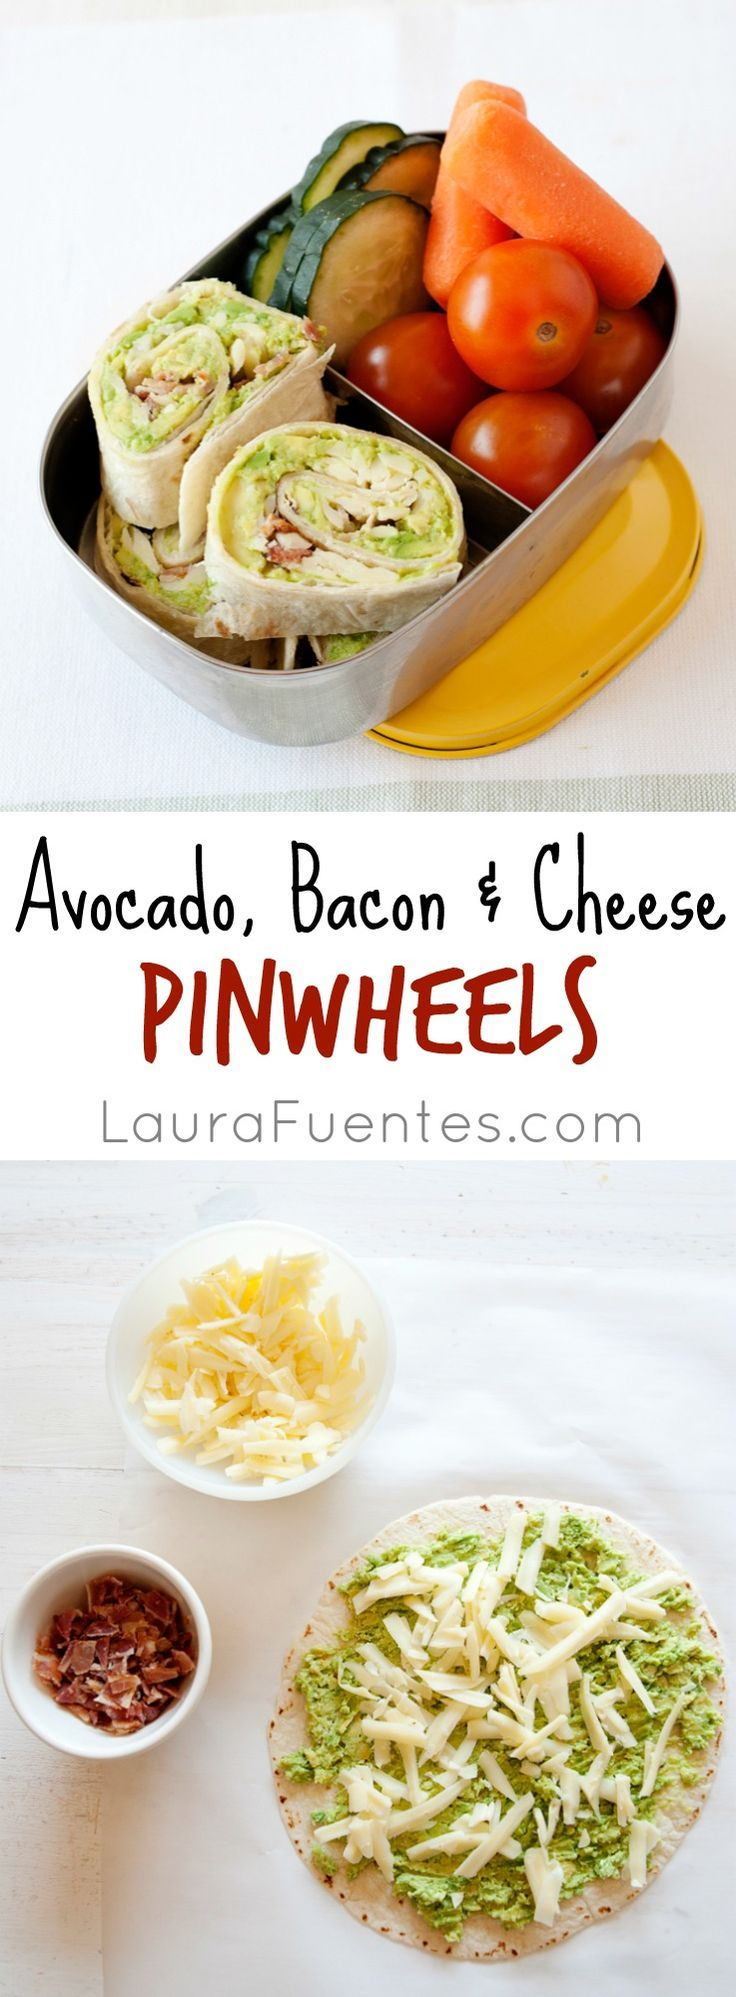 Avocado Bacon and Cheese Pinwheels: Perfect for your office lunch or a twist on your kids lunchbox. Get creative and change up your sandwich with a wrap!